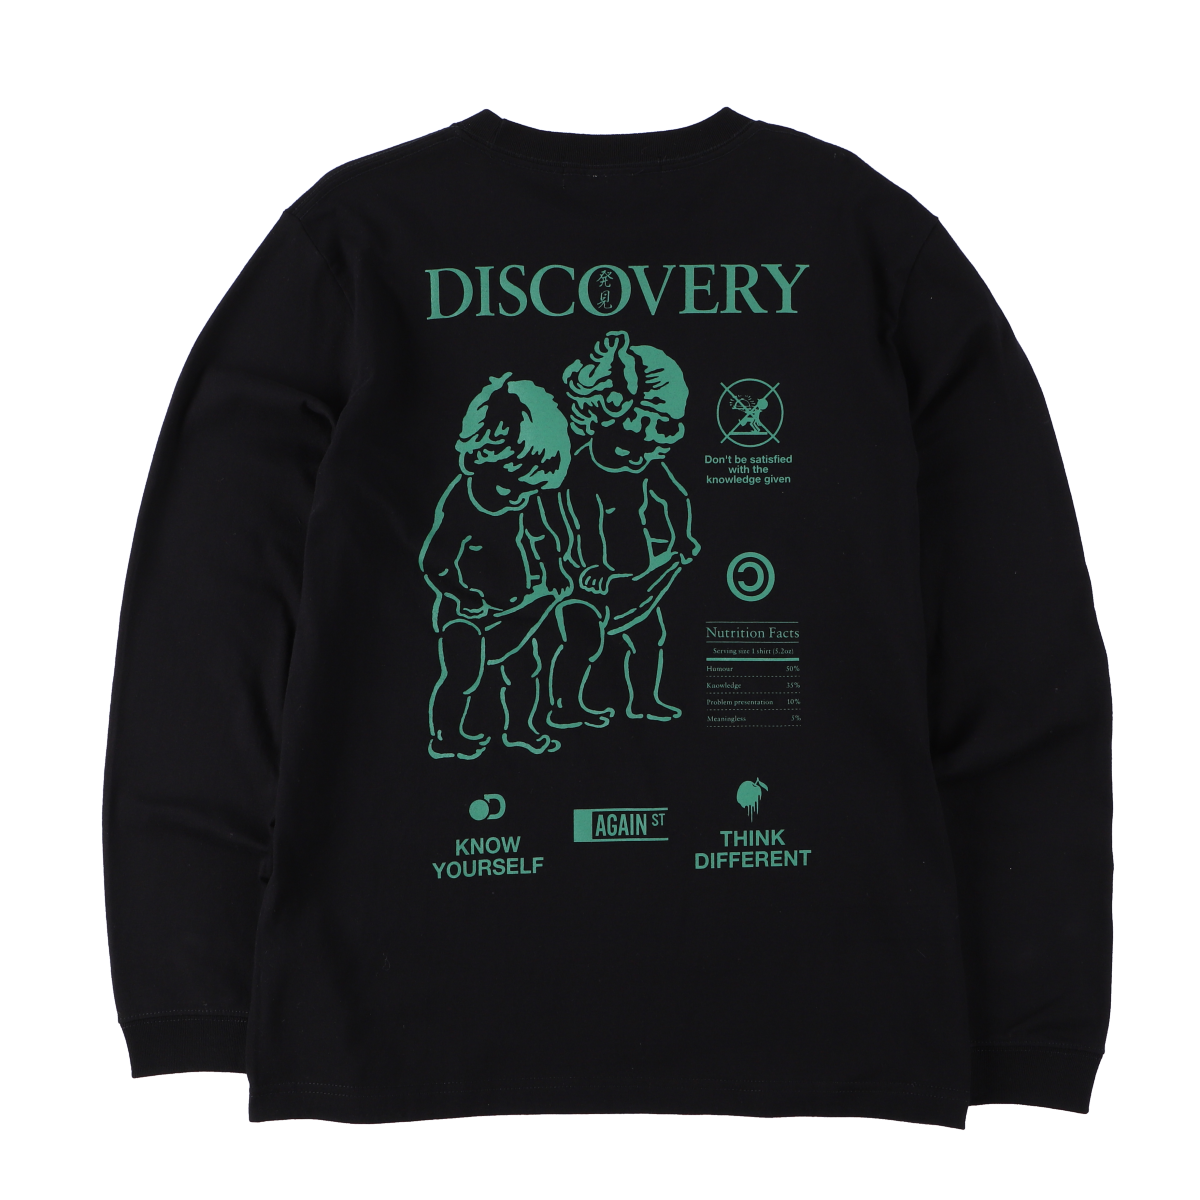 DISCOVERY L/S Tee Black